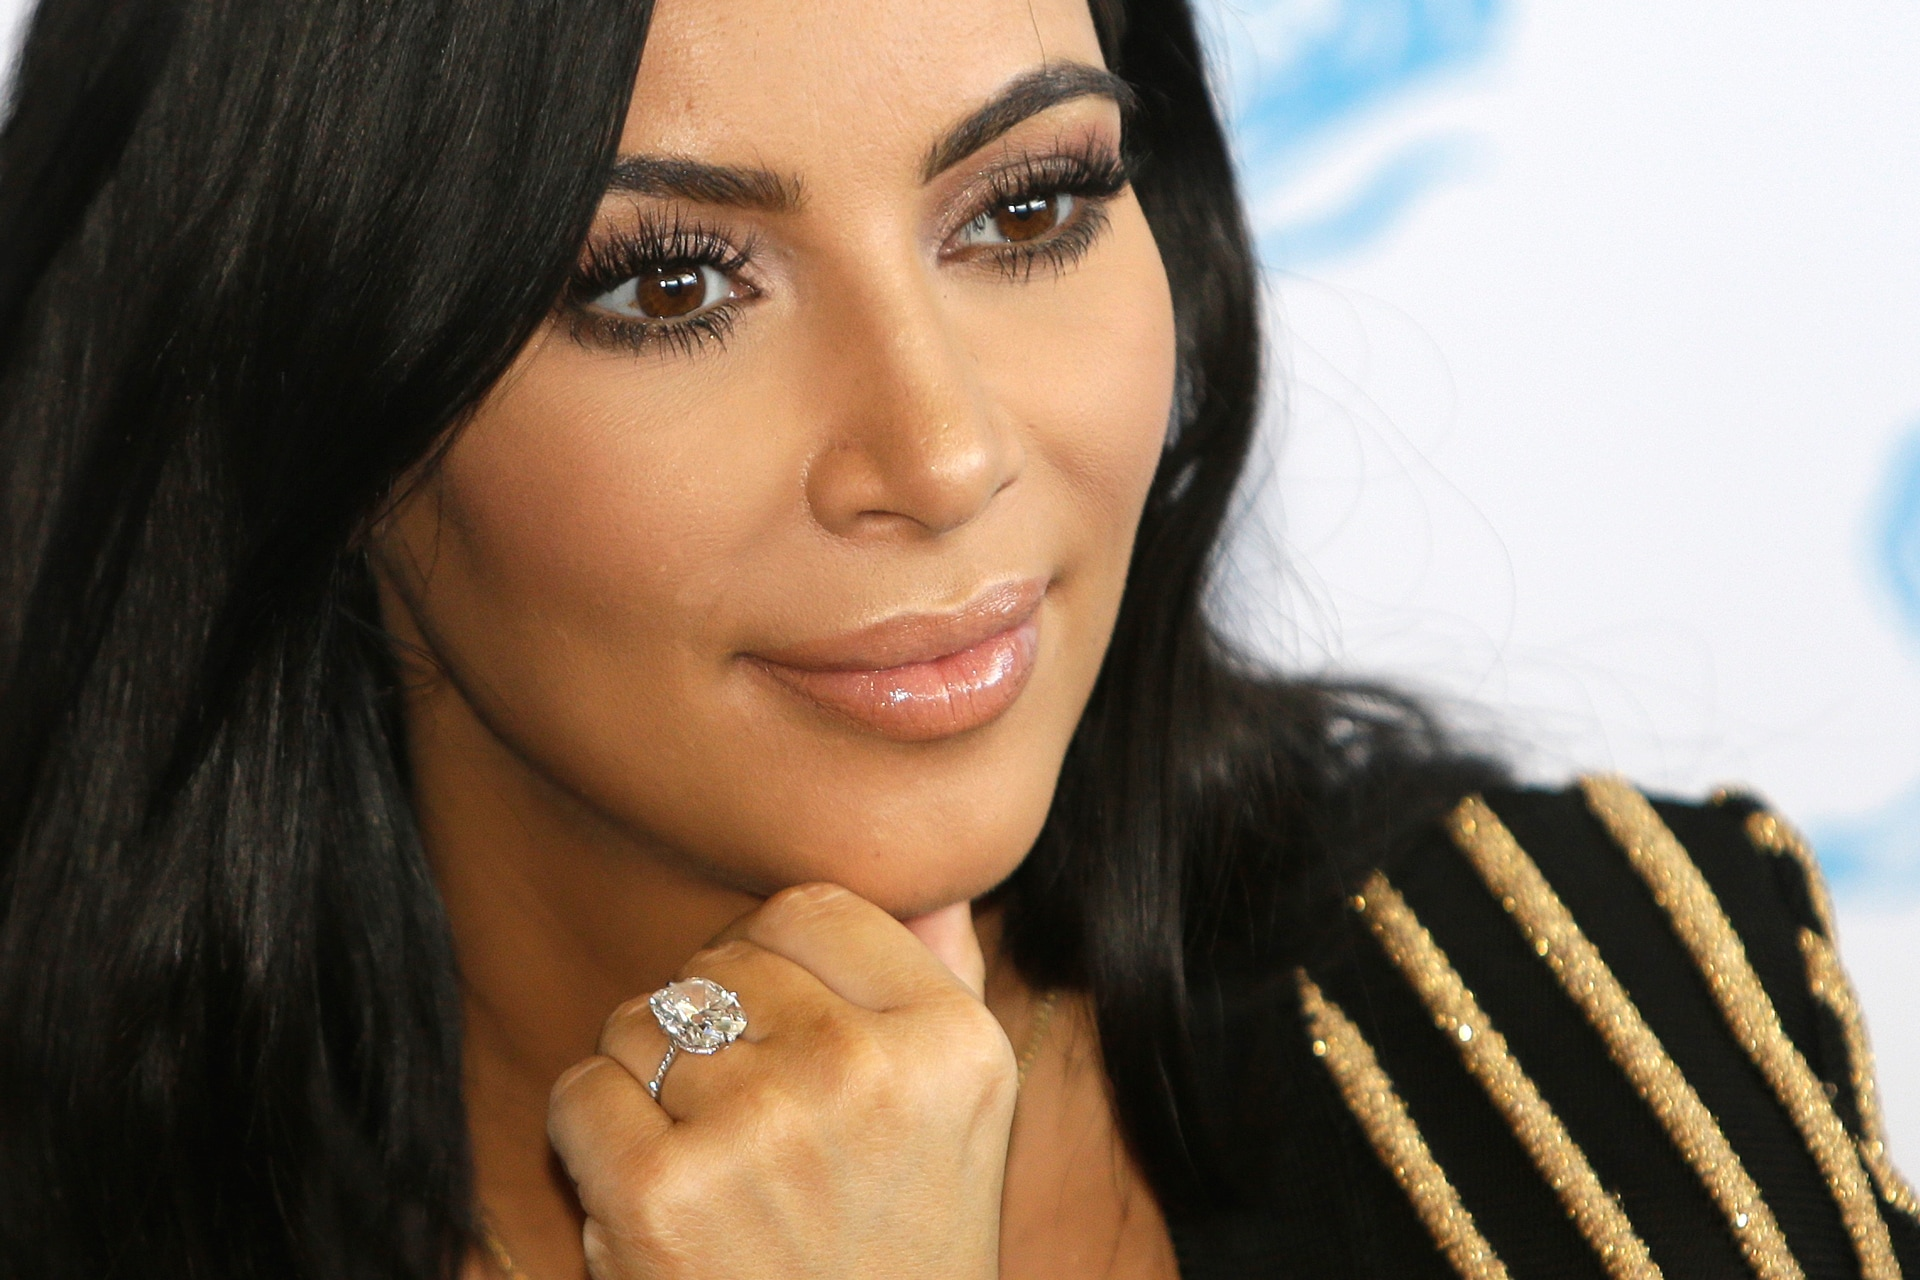 Kim Kardashian Shares Sweet Photo Of 'Inseperable' Siblings Chicago And Saint